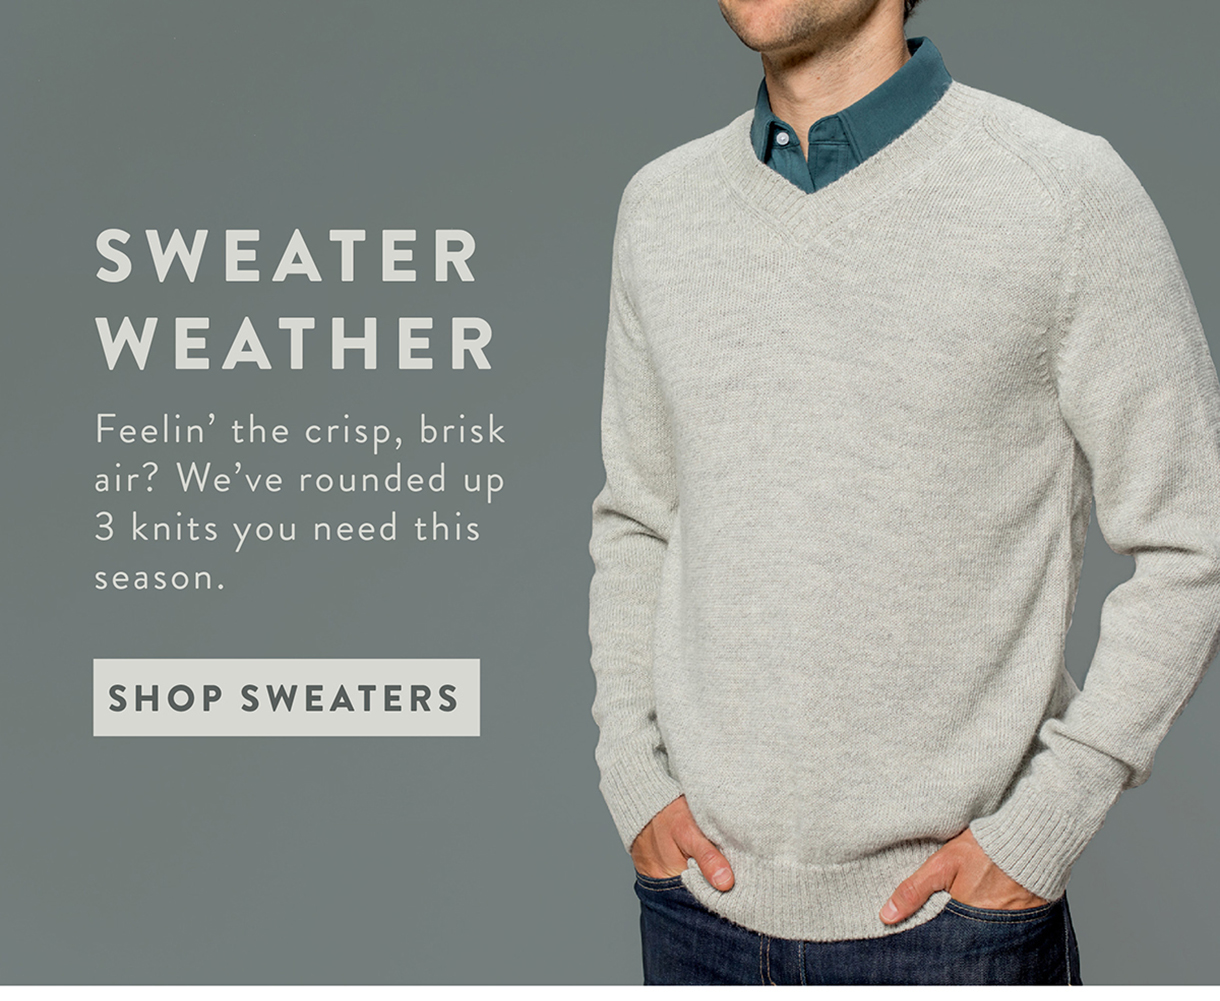 SWEATER WEATHER | Feelin' the crisp, brisk air? We've rounded up 3 knits you need this season. | SHOP SWEATERS